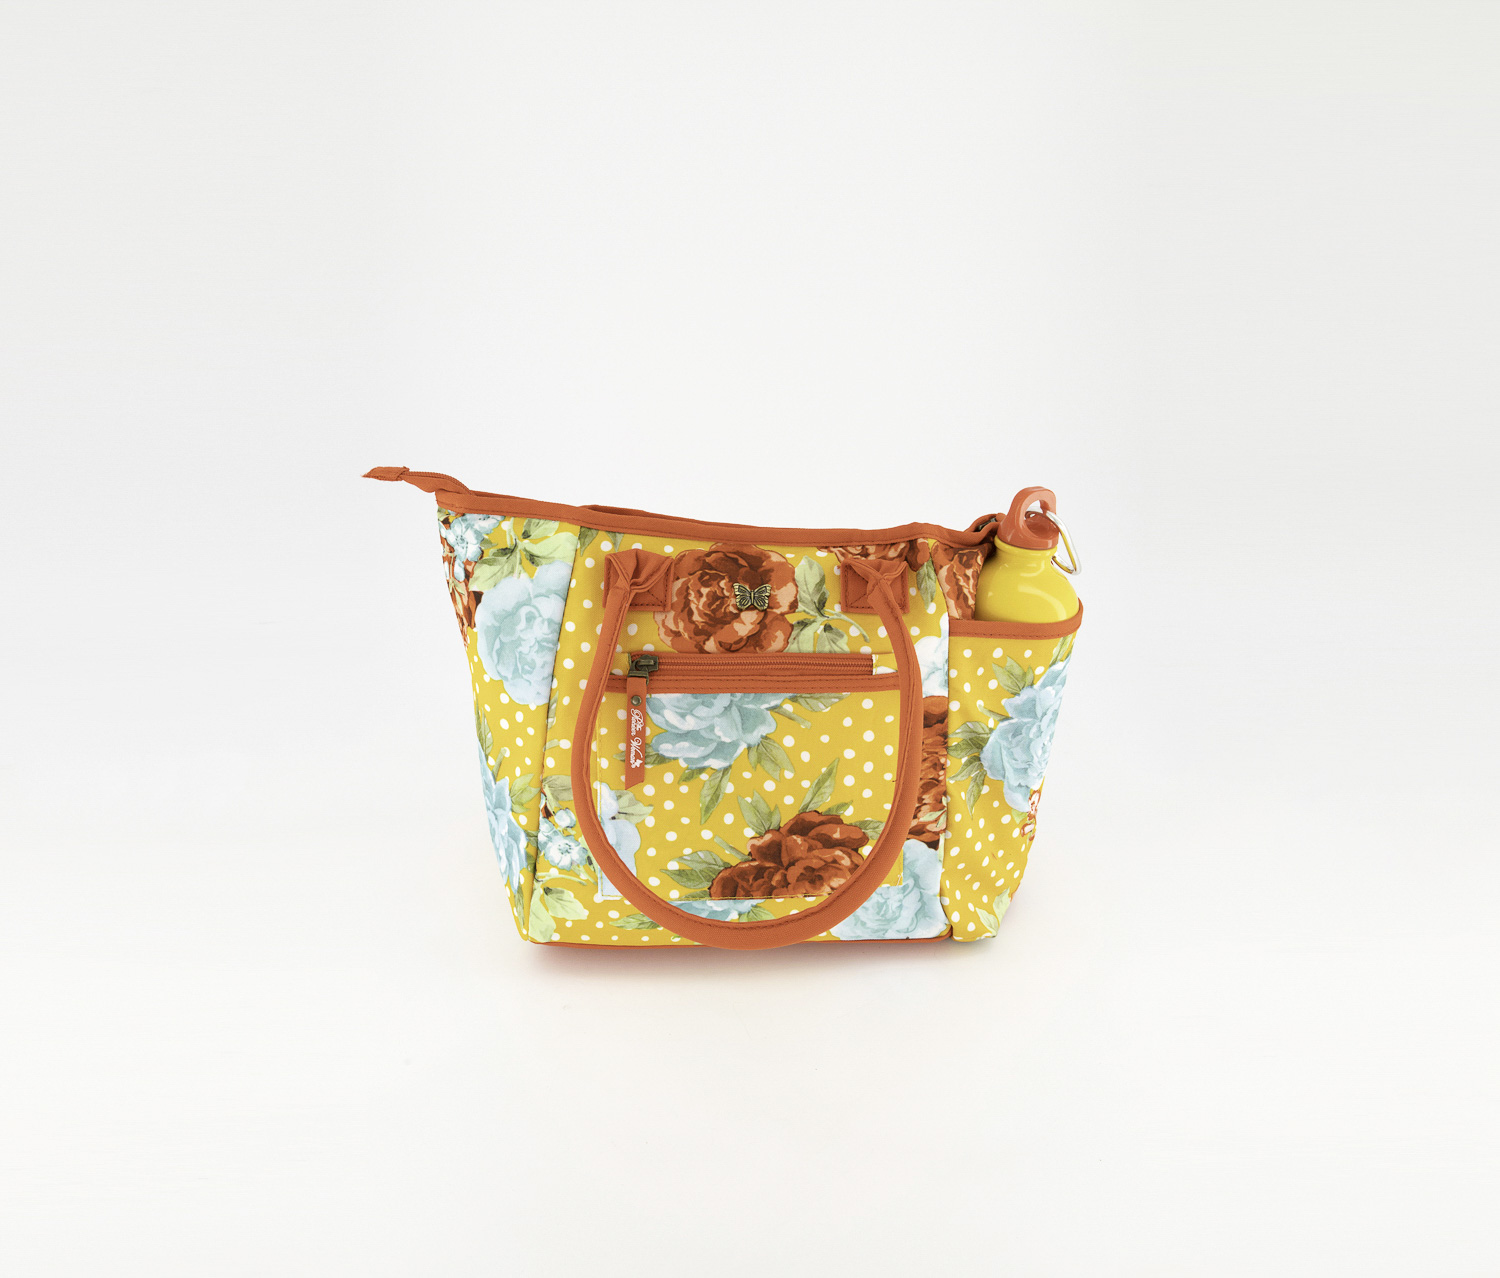 Pioneer Woman Insulted Lunch Bag with Bottle, Orange